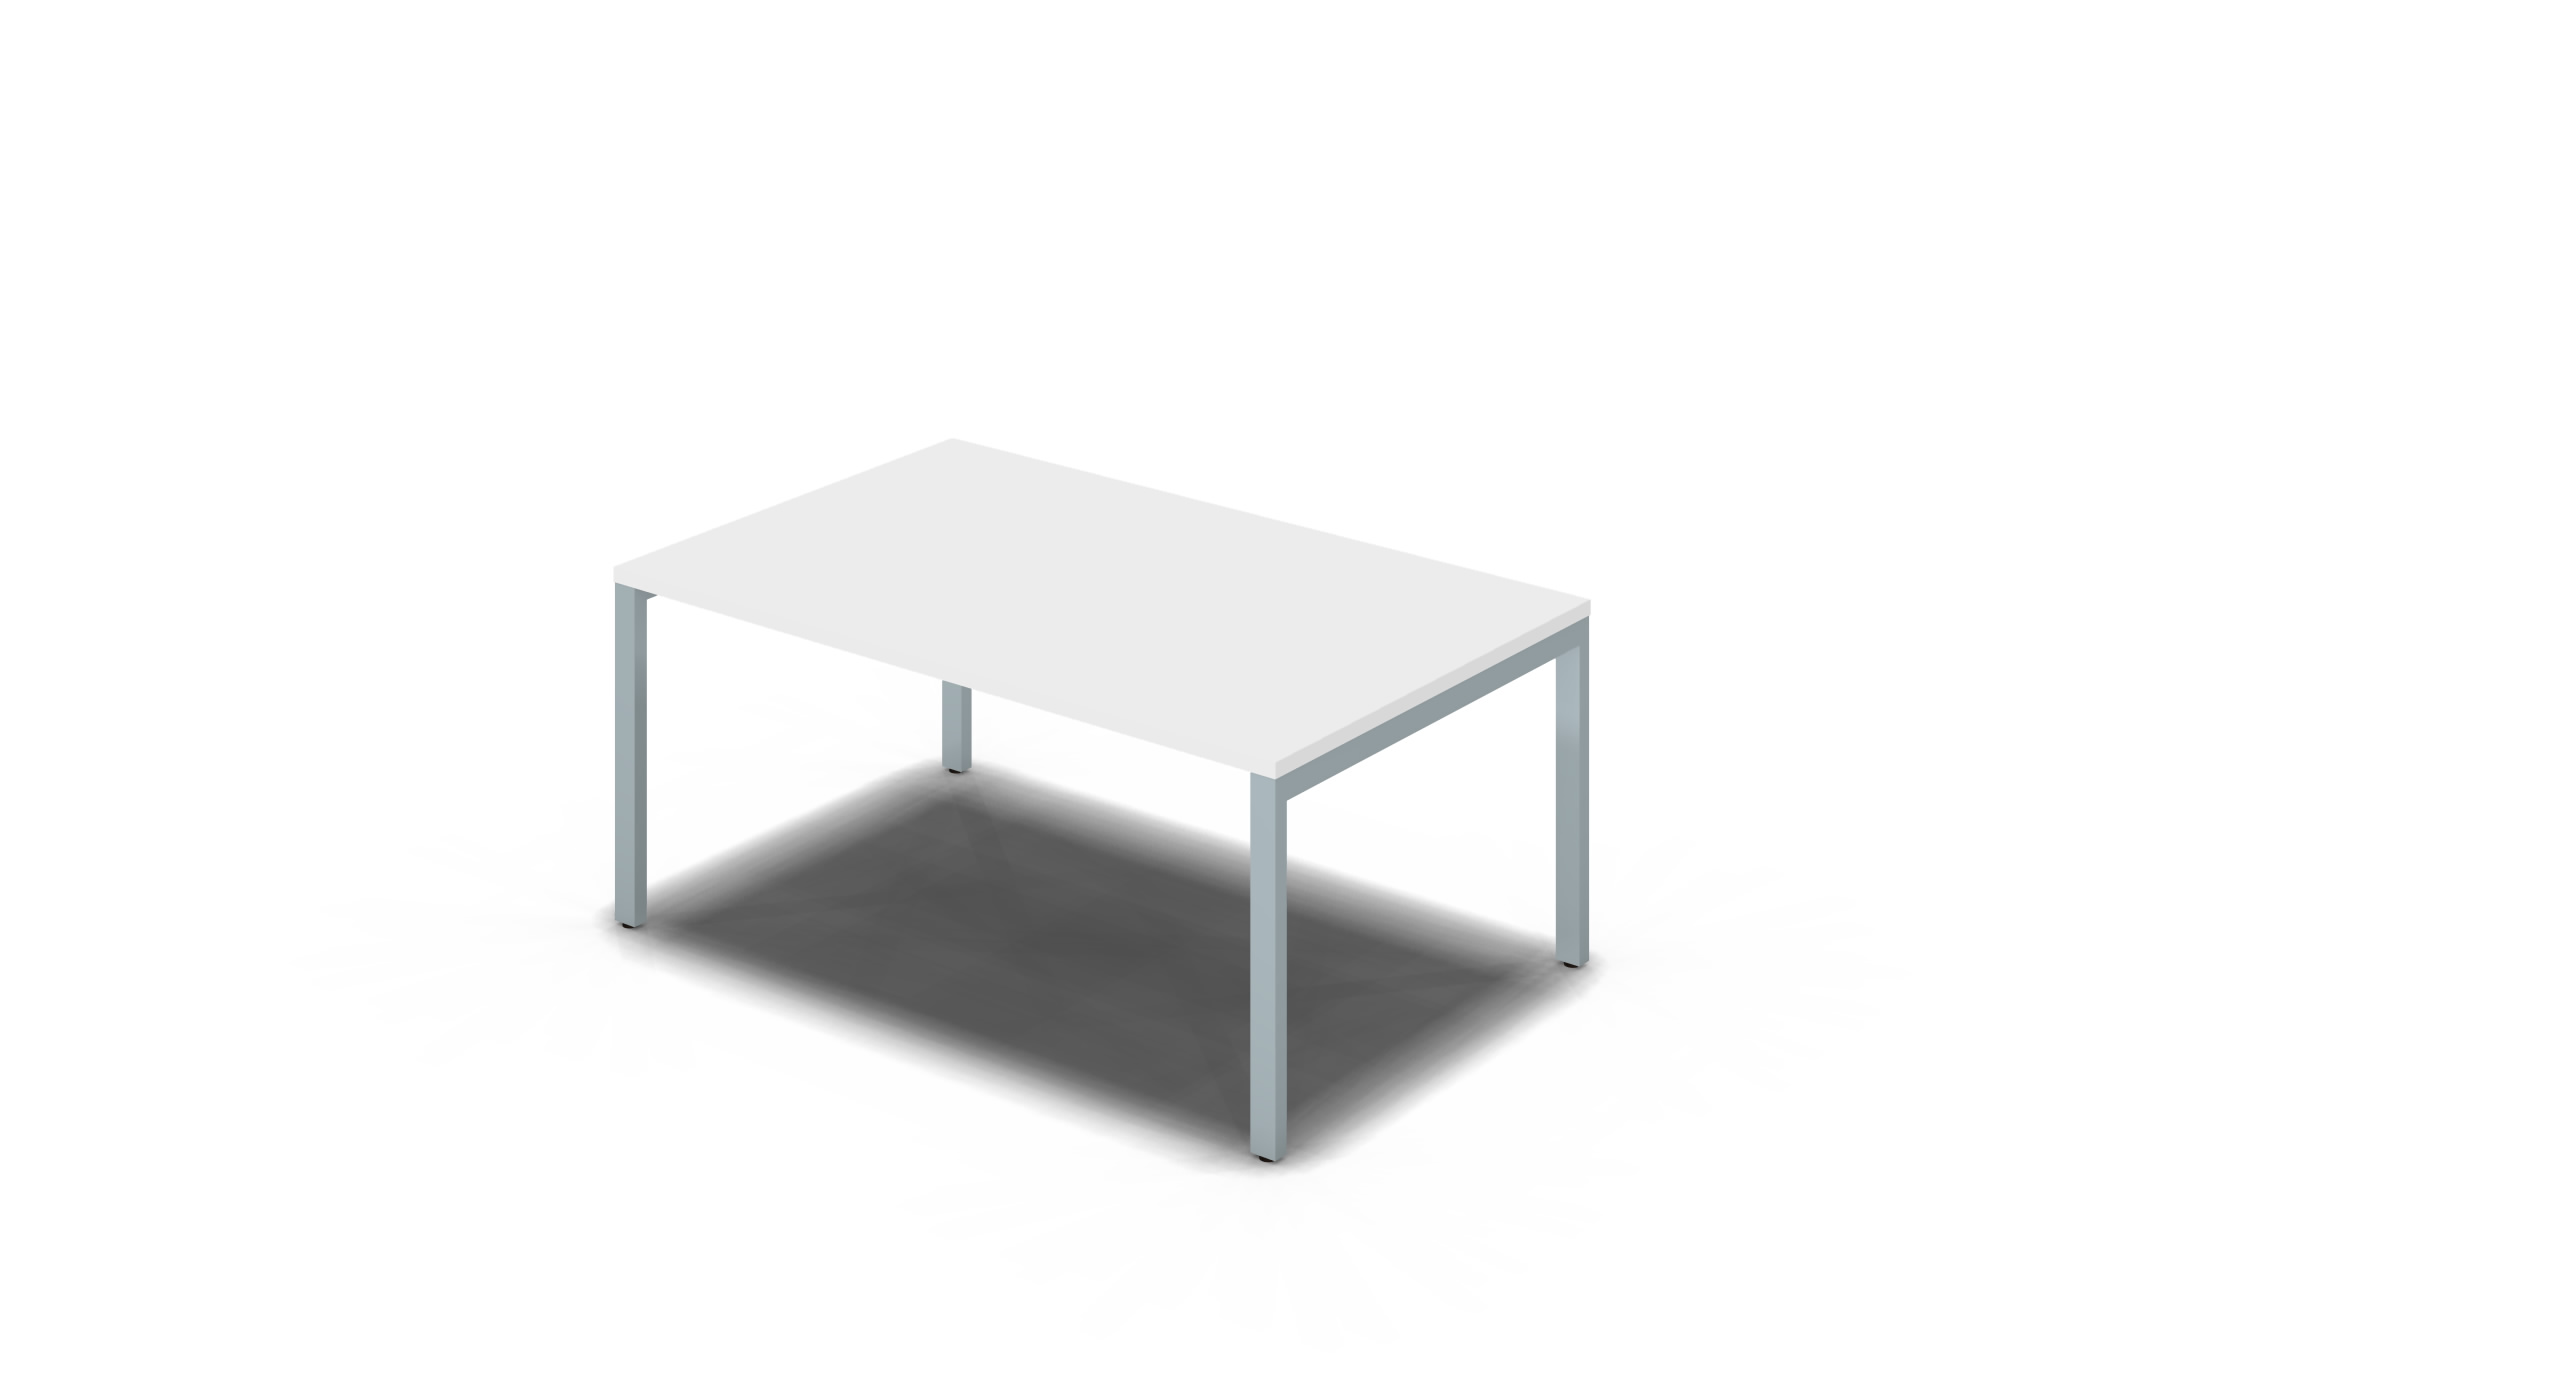 Table_Square_1500x900_Silver_White_noOption